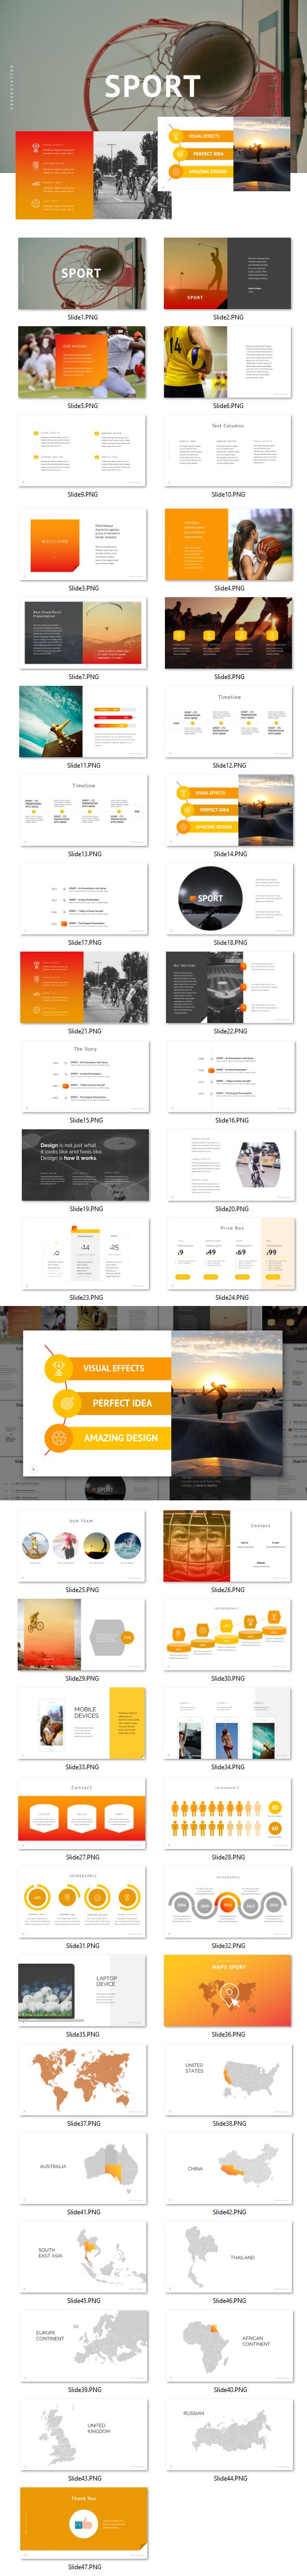 Sport  Powerpoint  Presentation Templates Template And Creative